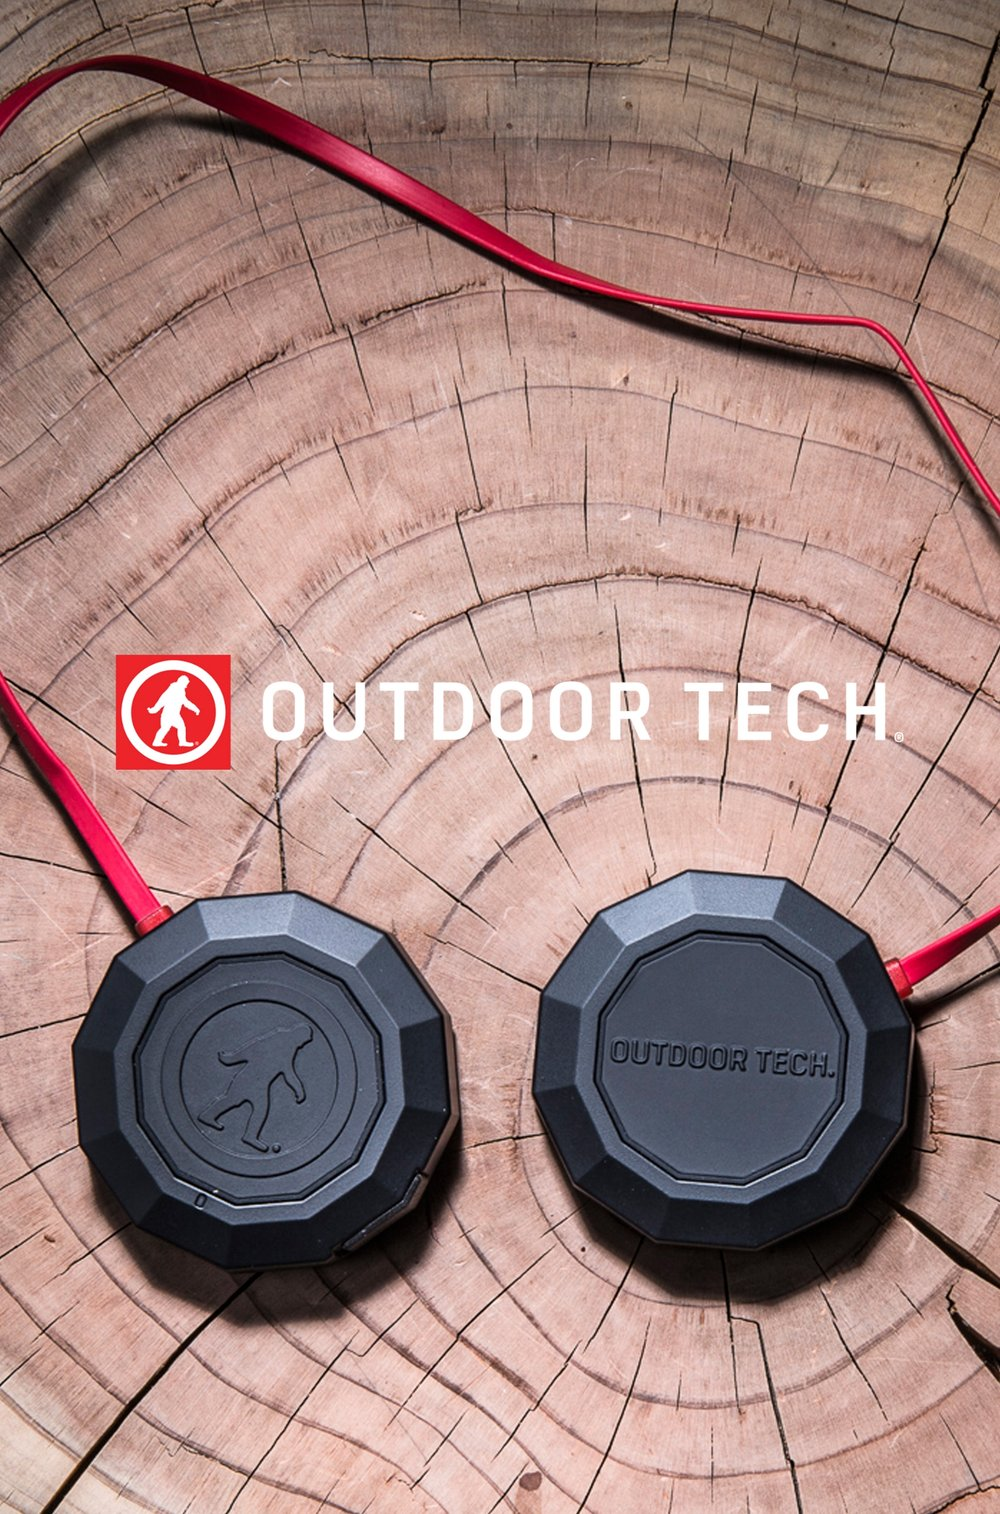 Outdoor Tech:  Identity, Web, Product, Packaging, Exhibits, Brand Strategy